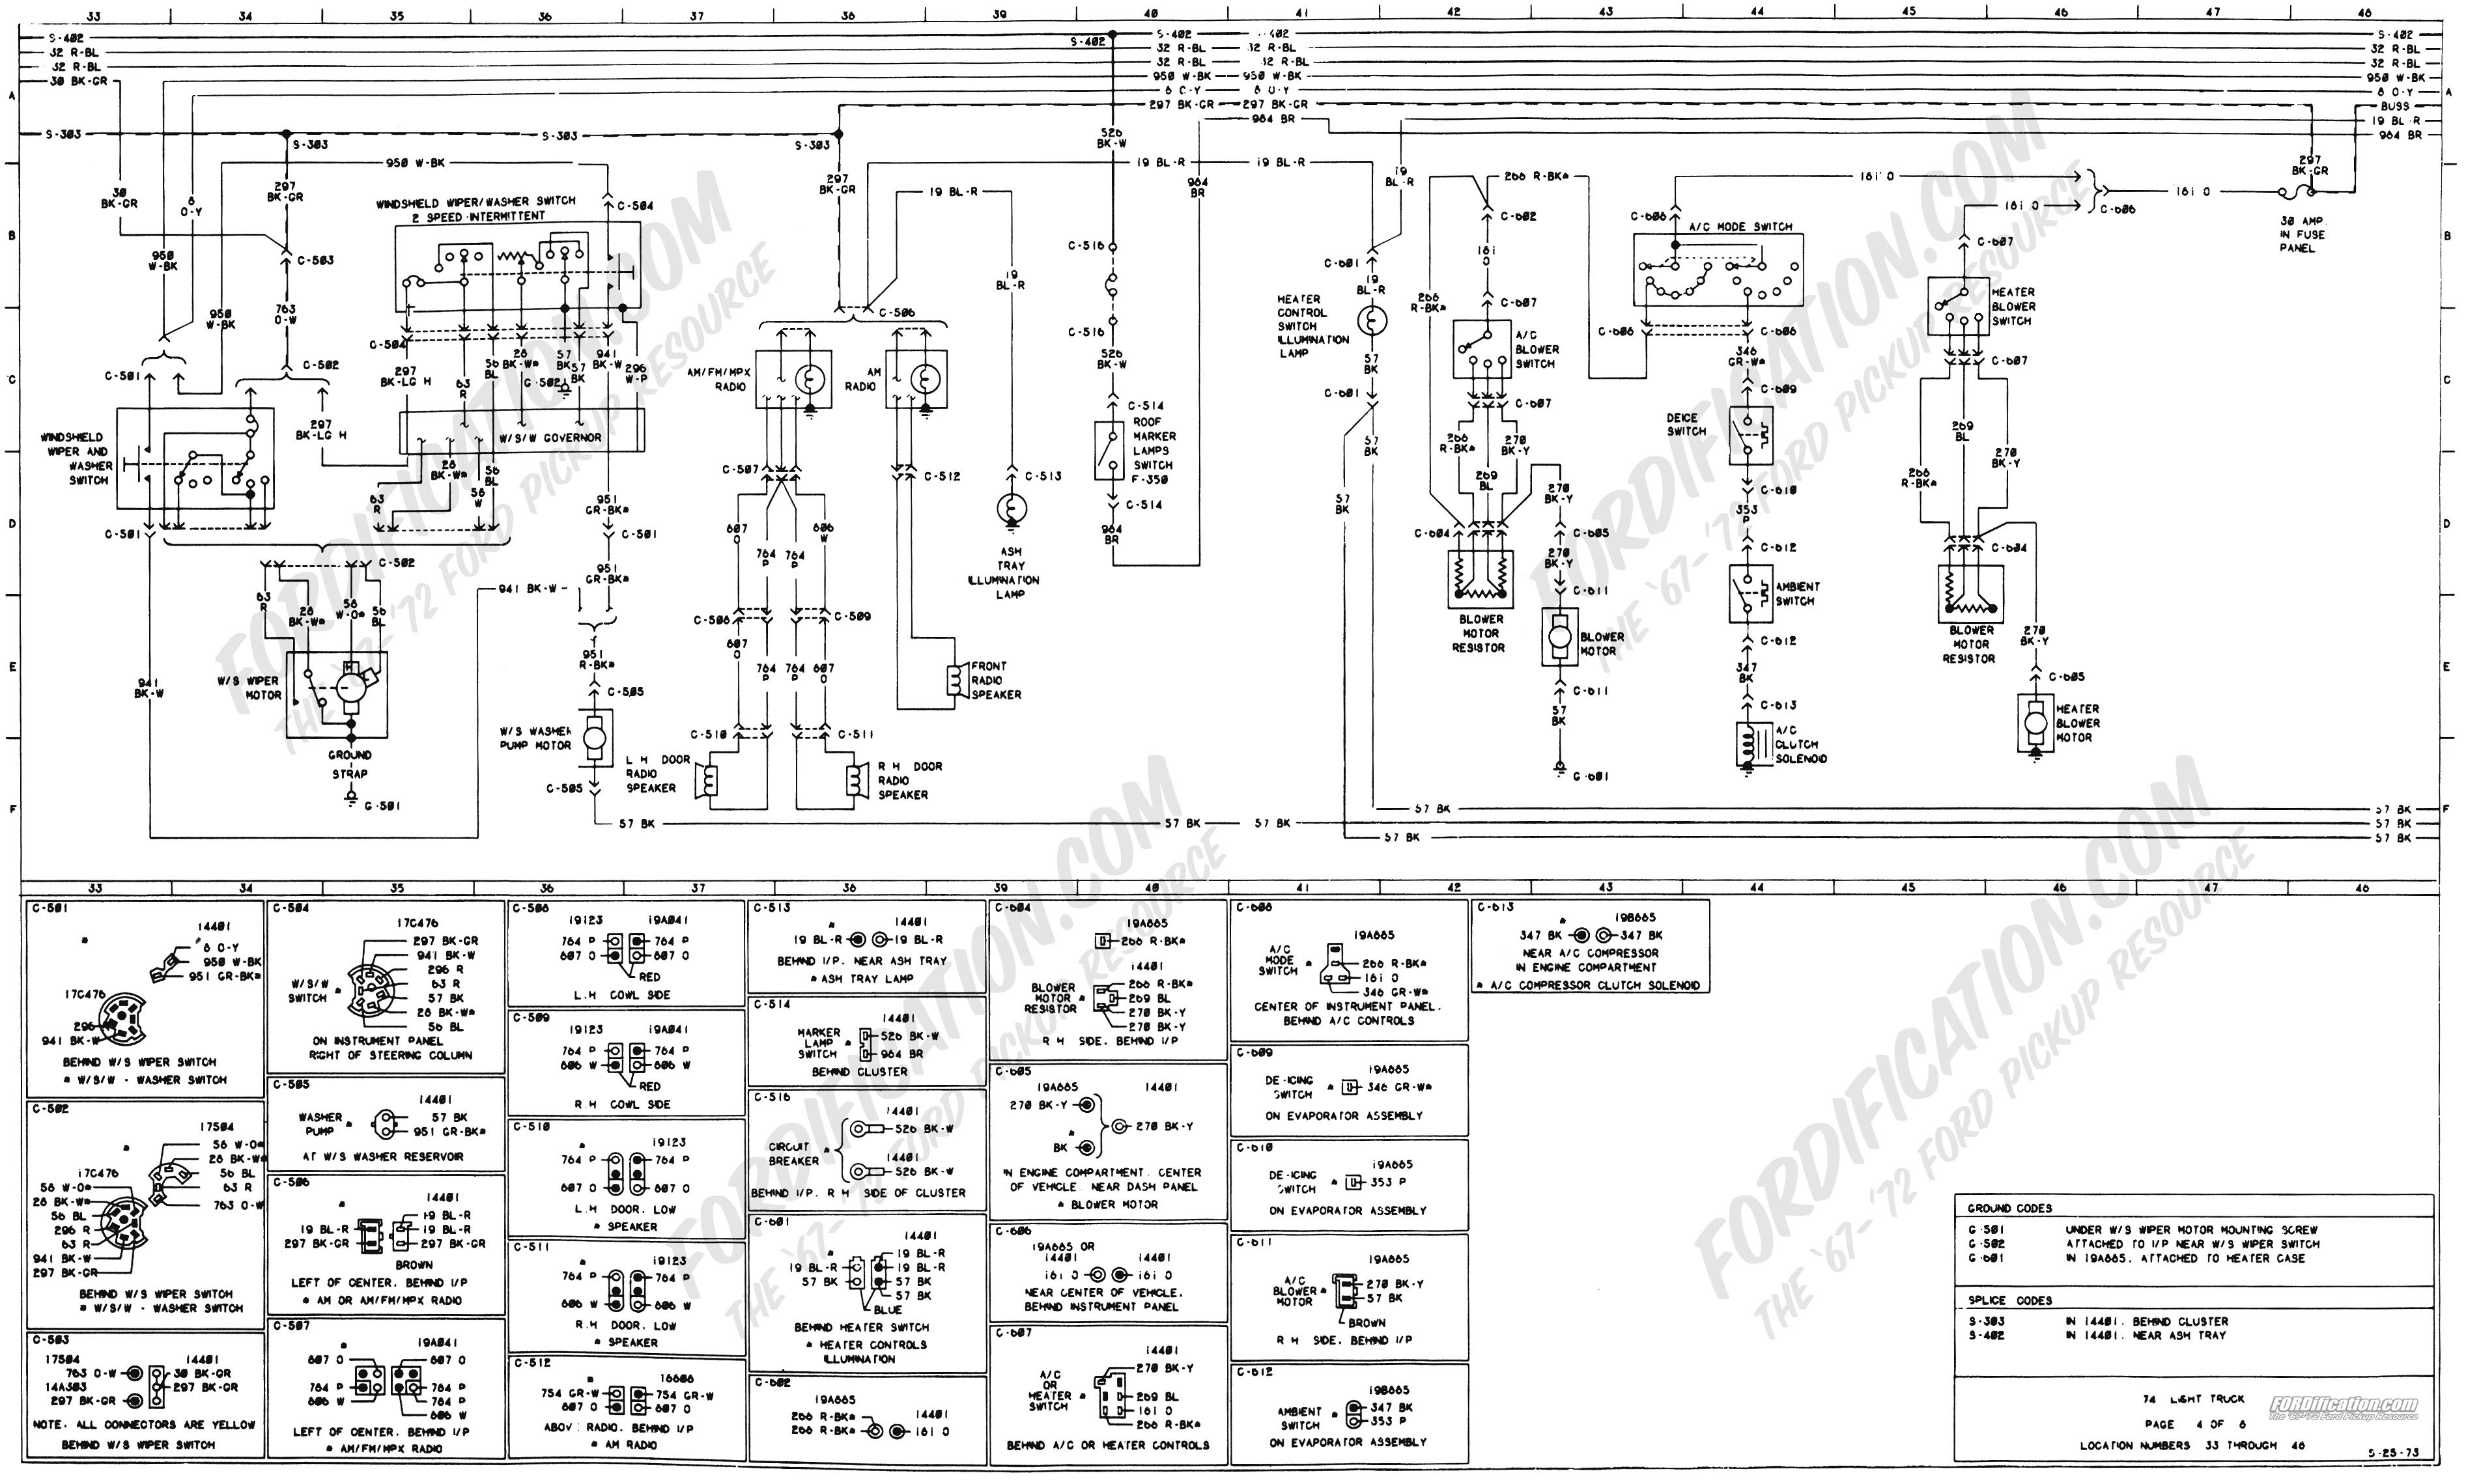 2012 Ford Focus Wiper Motor Wiring Diagram Wiring Diagrams Auto Few Position A Few Position A Moskitofree It